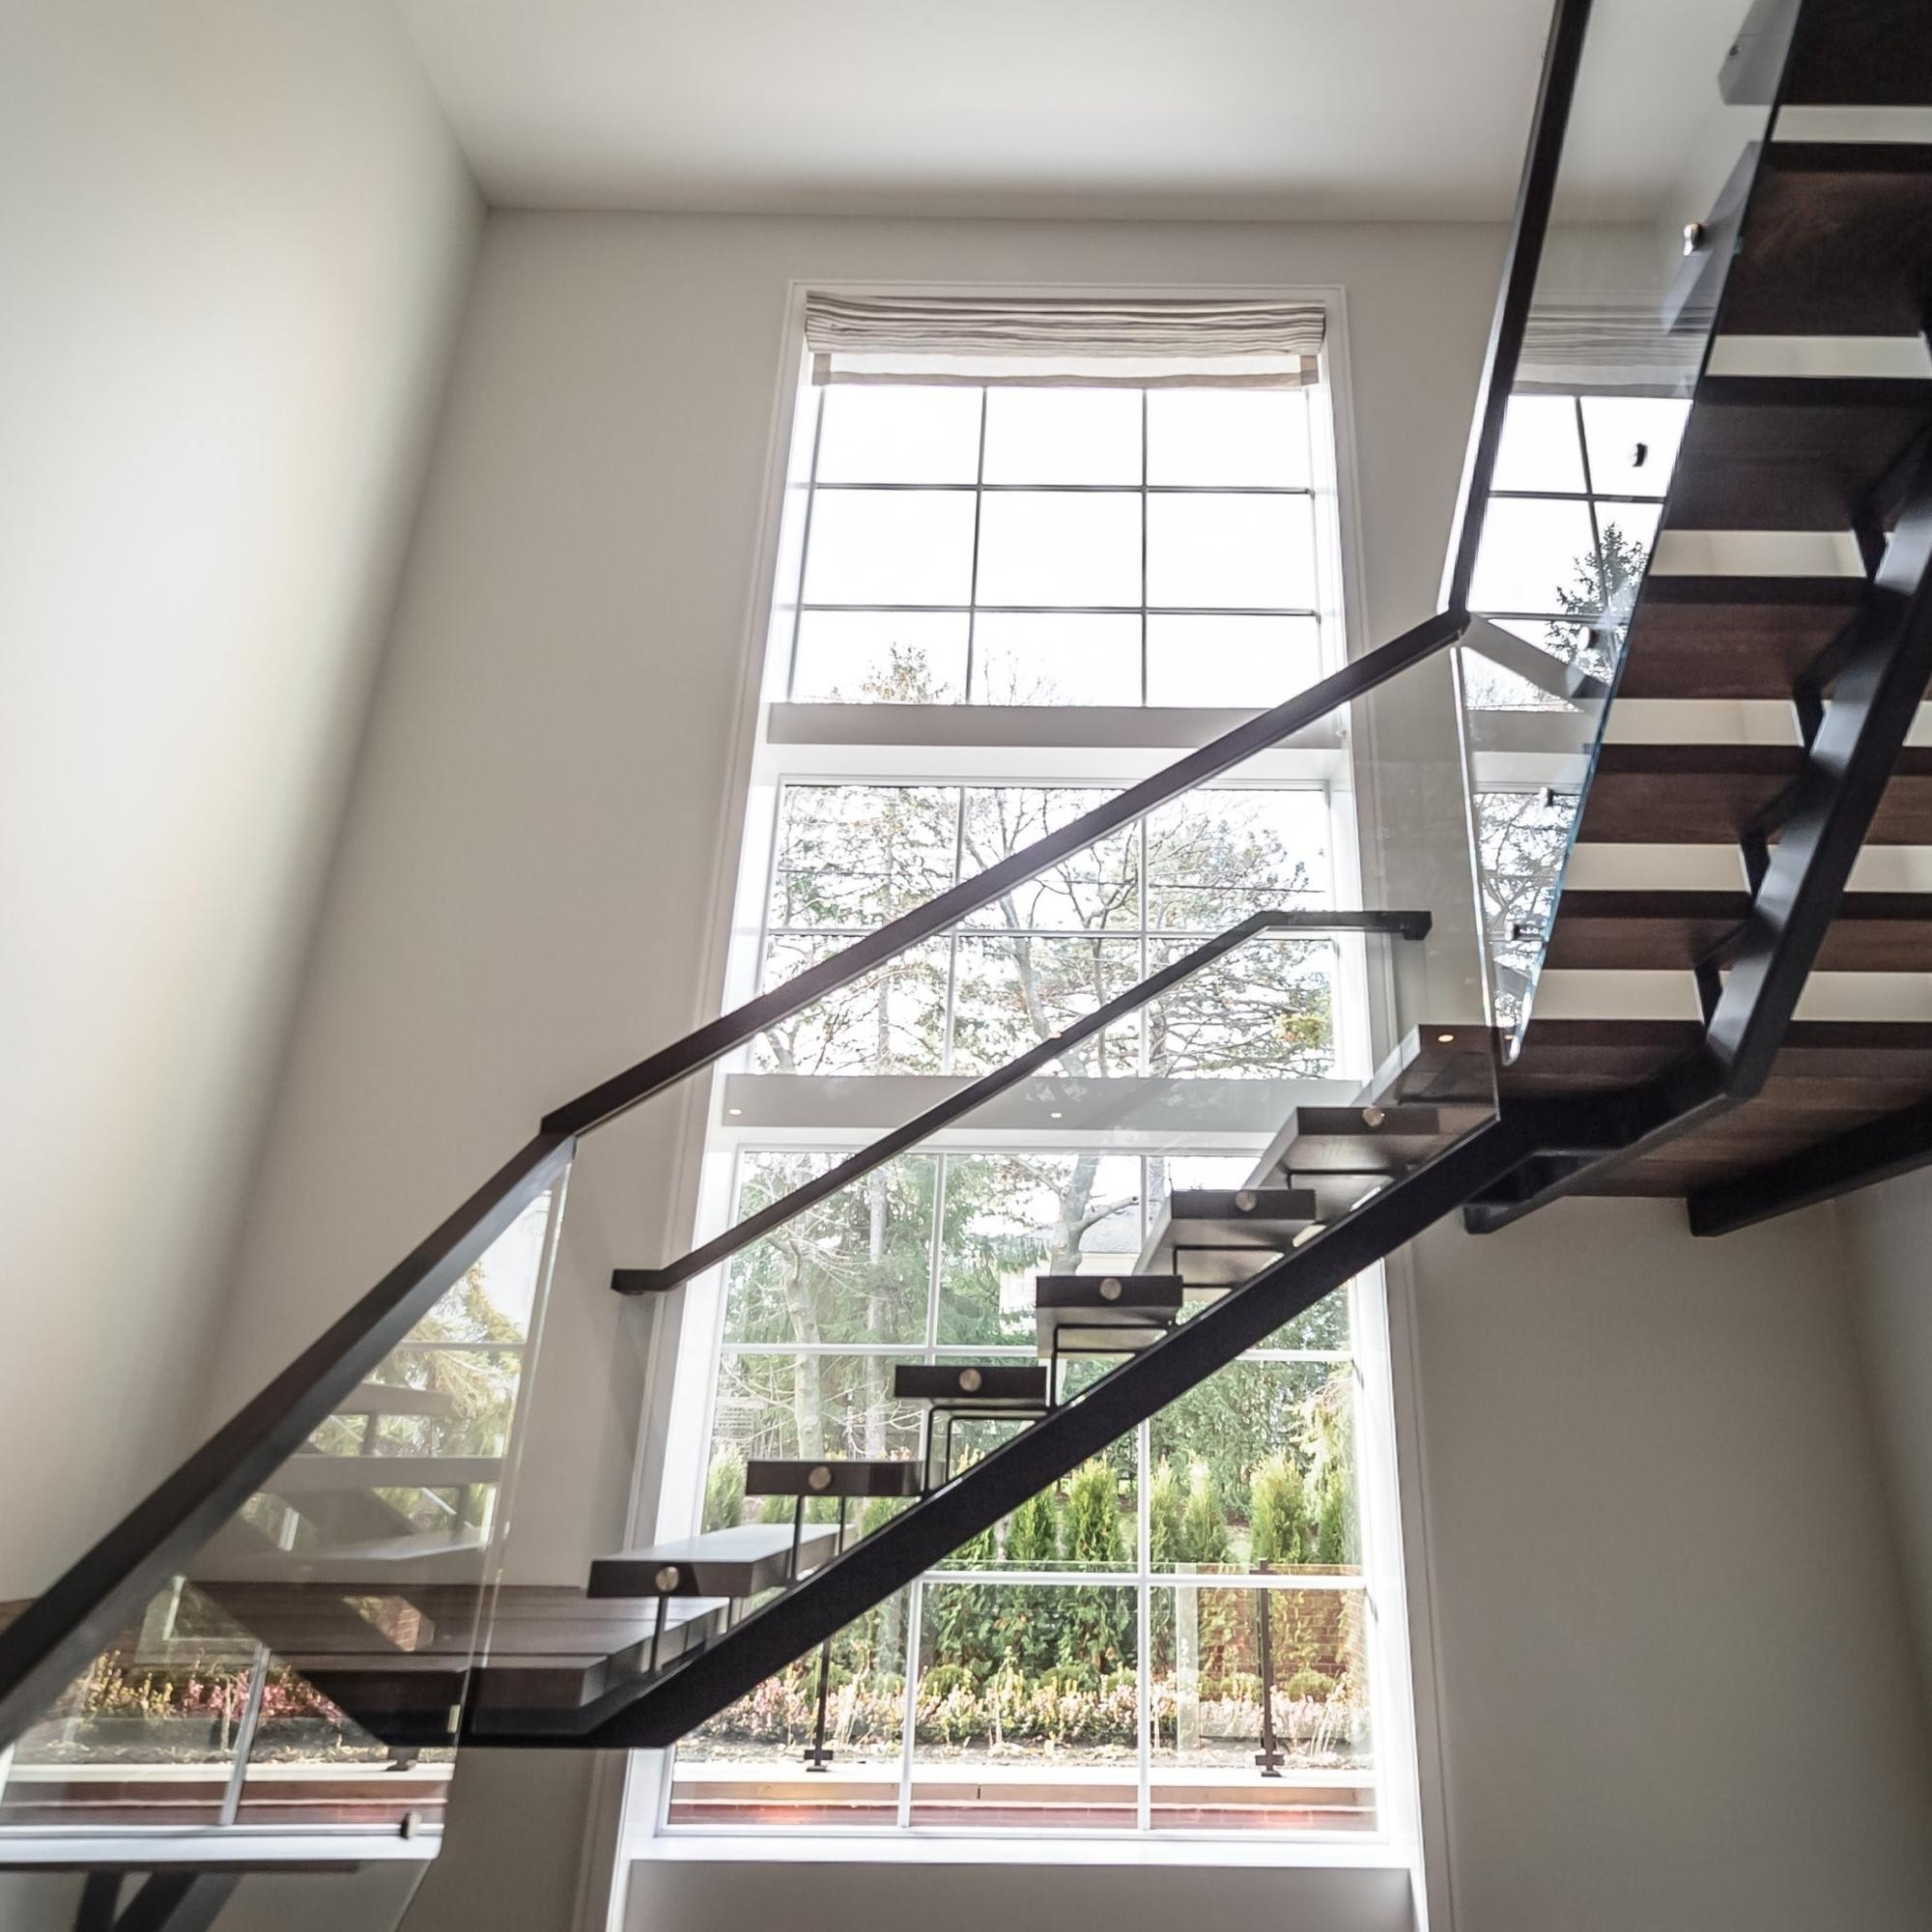 Modern Residential Glass Railing Staircase Solid Wood Tread L | Railing Of Stairs Design | Stainless | Wrought Iron | Ultra Modern Stair Grill | Stylish | Creative